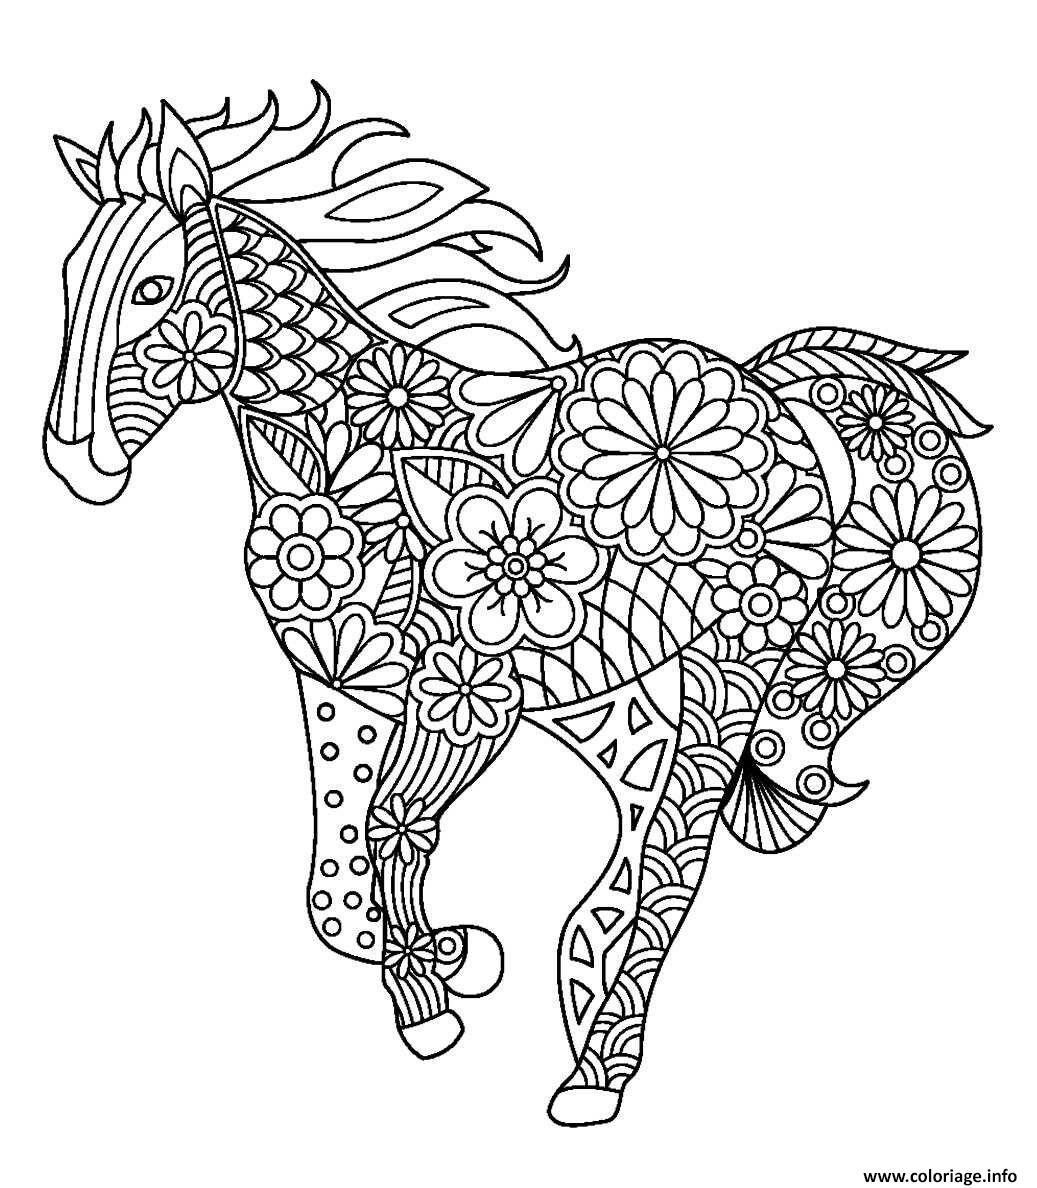 Coloriage cheval mandala adulte en course - Mandala de chevaux ...